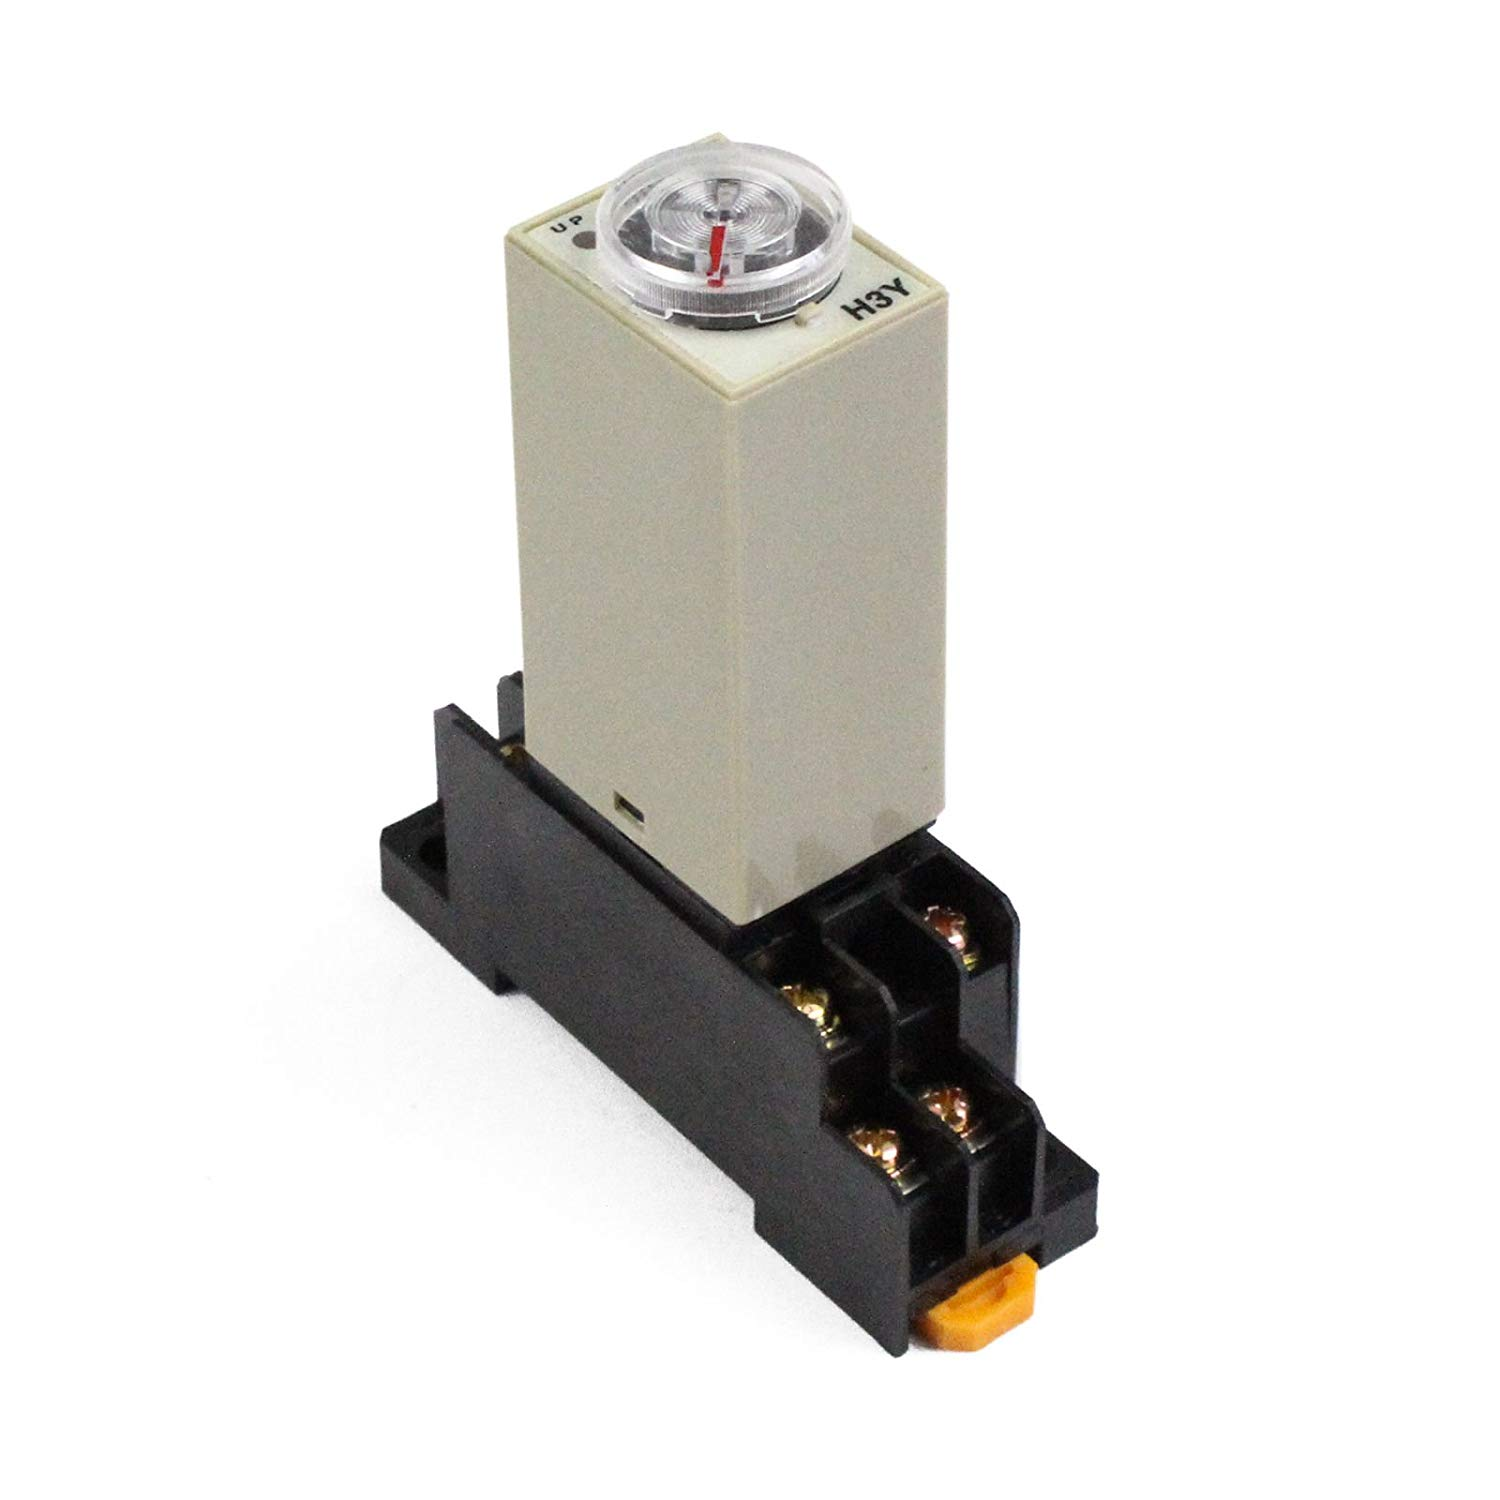 hight resolution of get quotations us ac 110v h3y 2 delay timer time relay 0 1 second 110vac